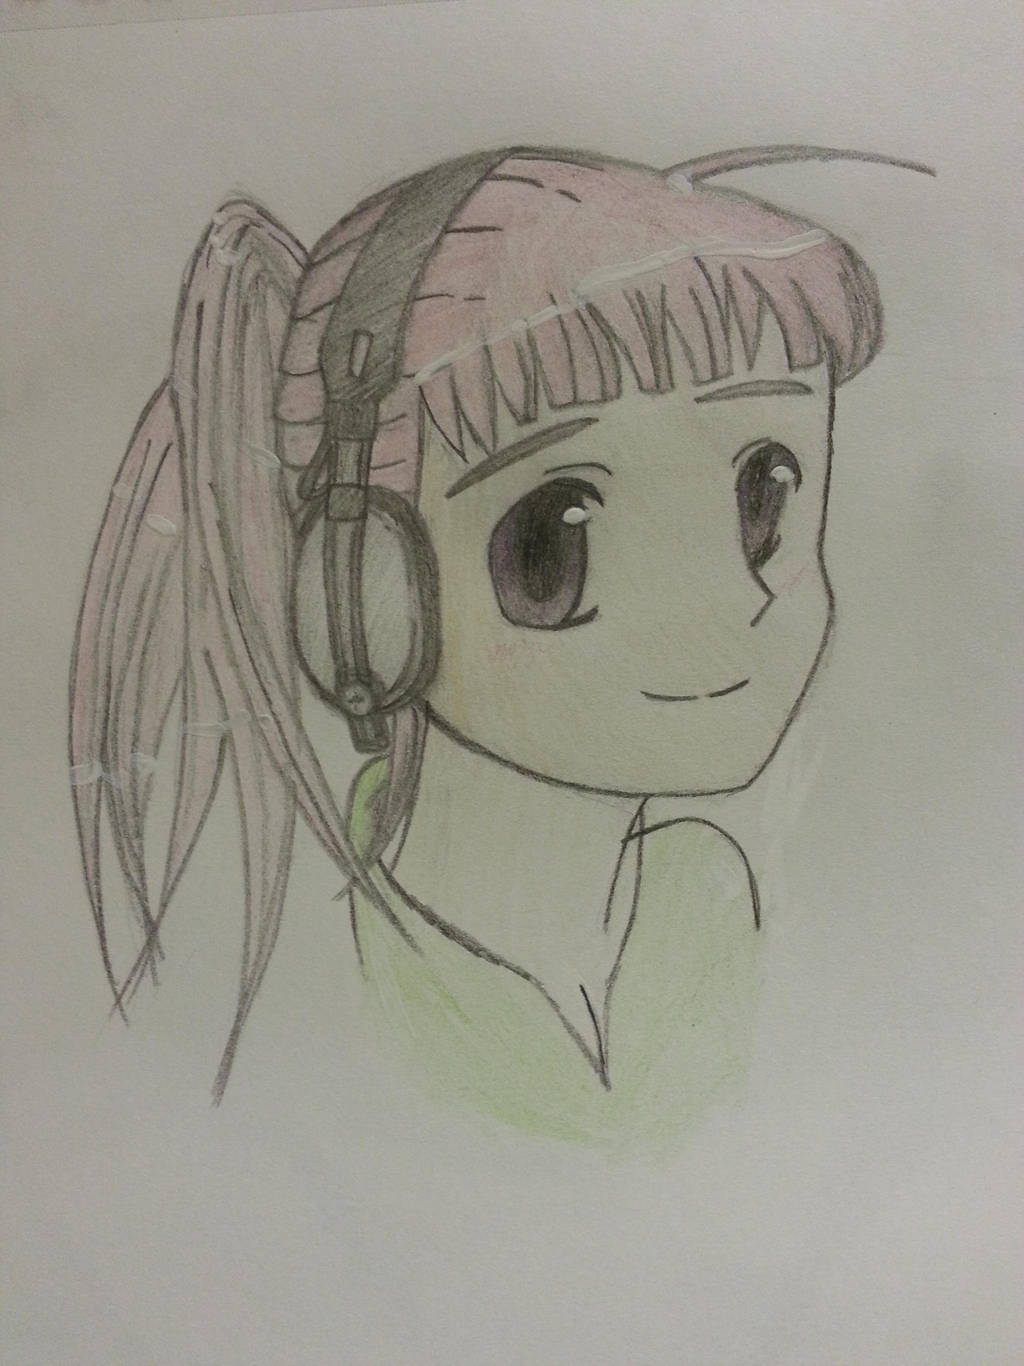 Girl With Headphones by lovemusicsoul1213